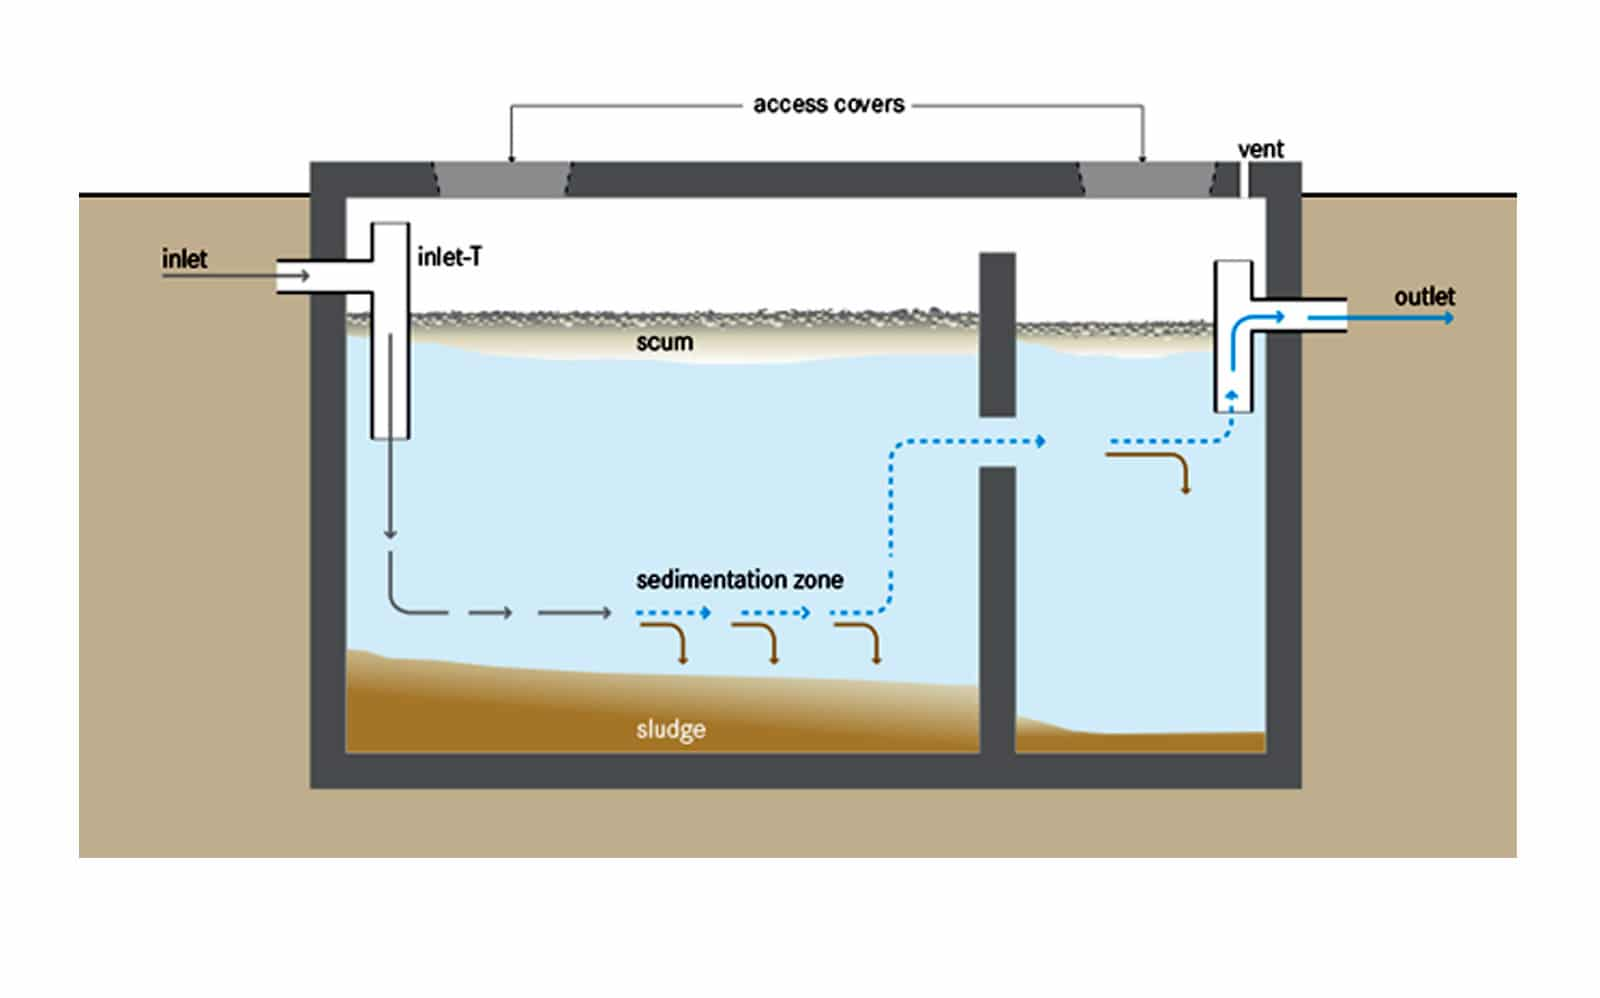 Although carefully designed, septic tank problems do arise, more routinely  in older systems. cesspool schematic